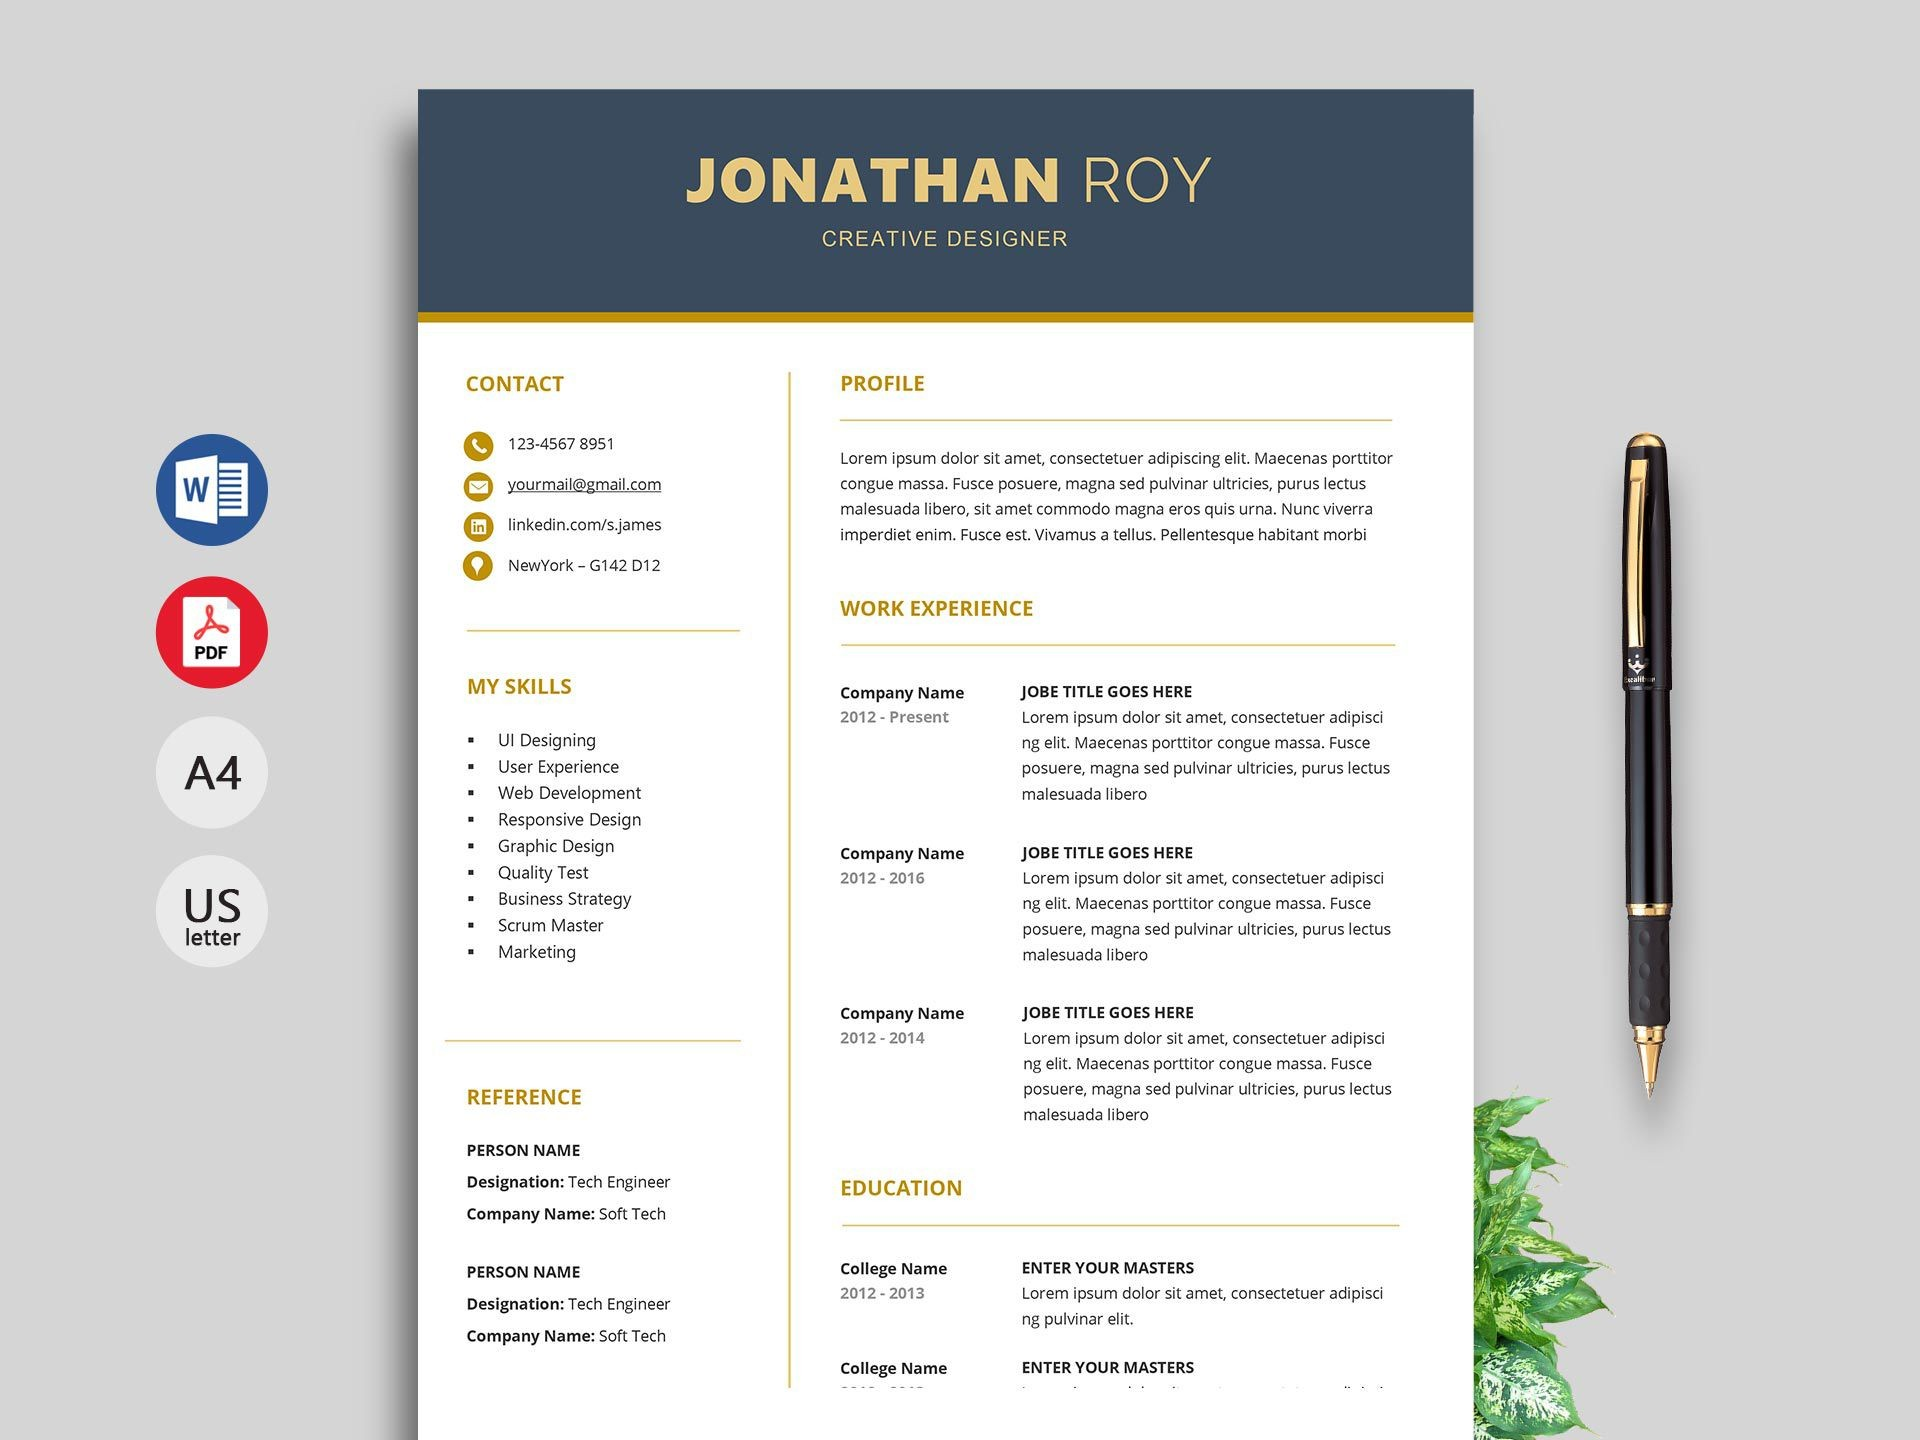 000 Dreaded Resume Template M Word 2020 Highest Clarity  Free Microsoft1920